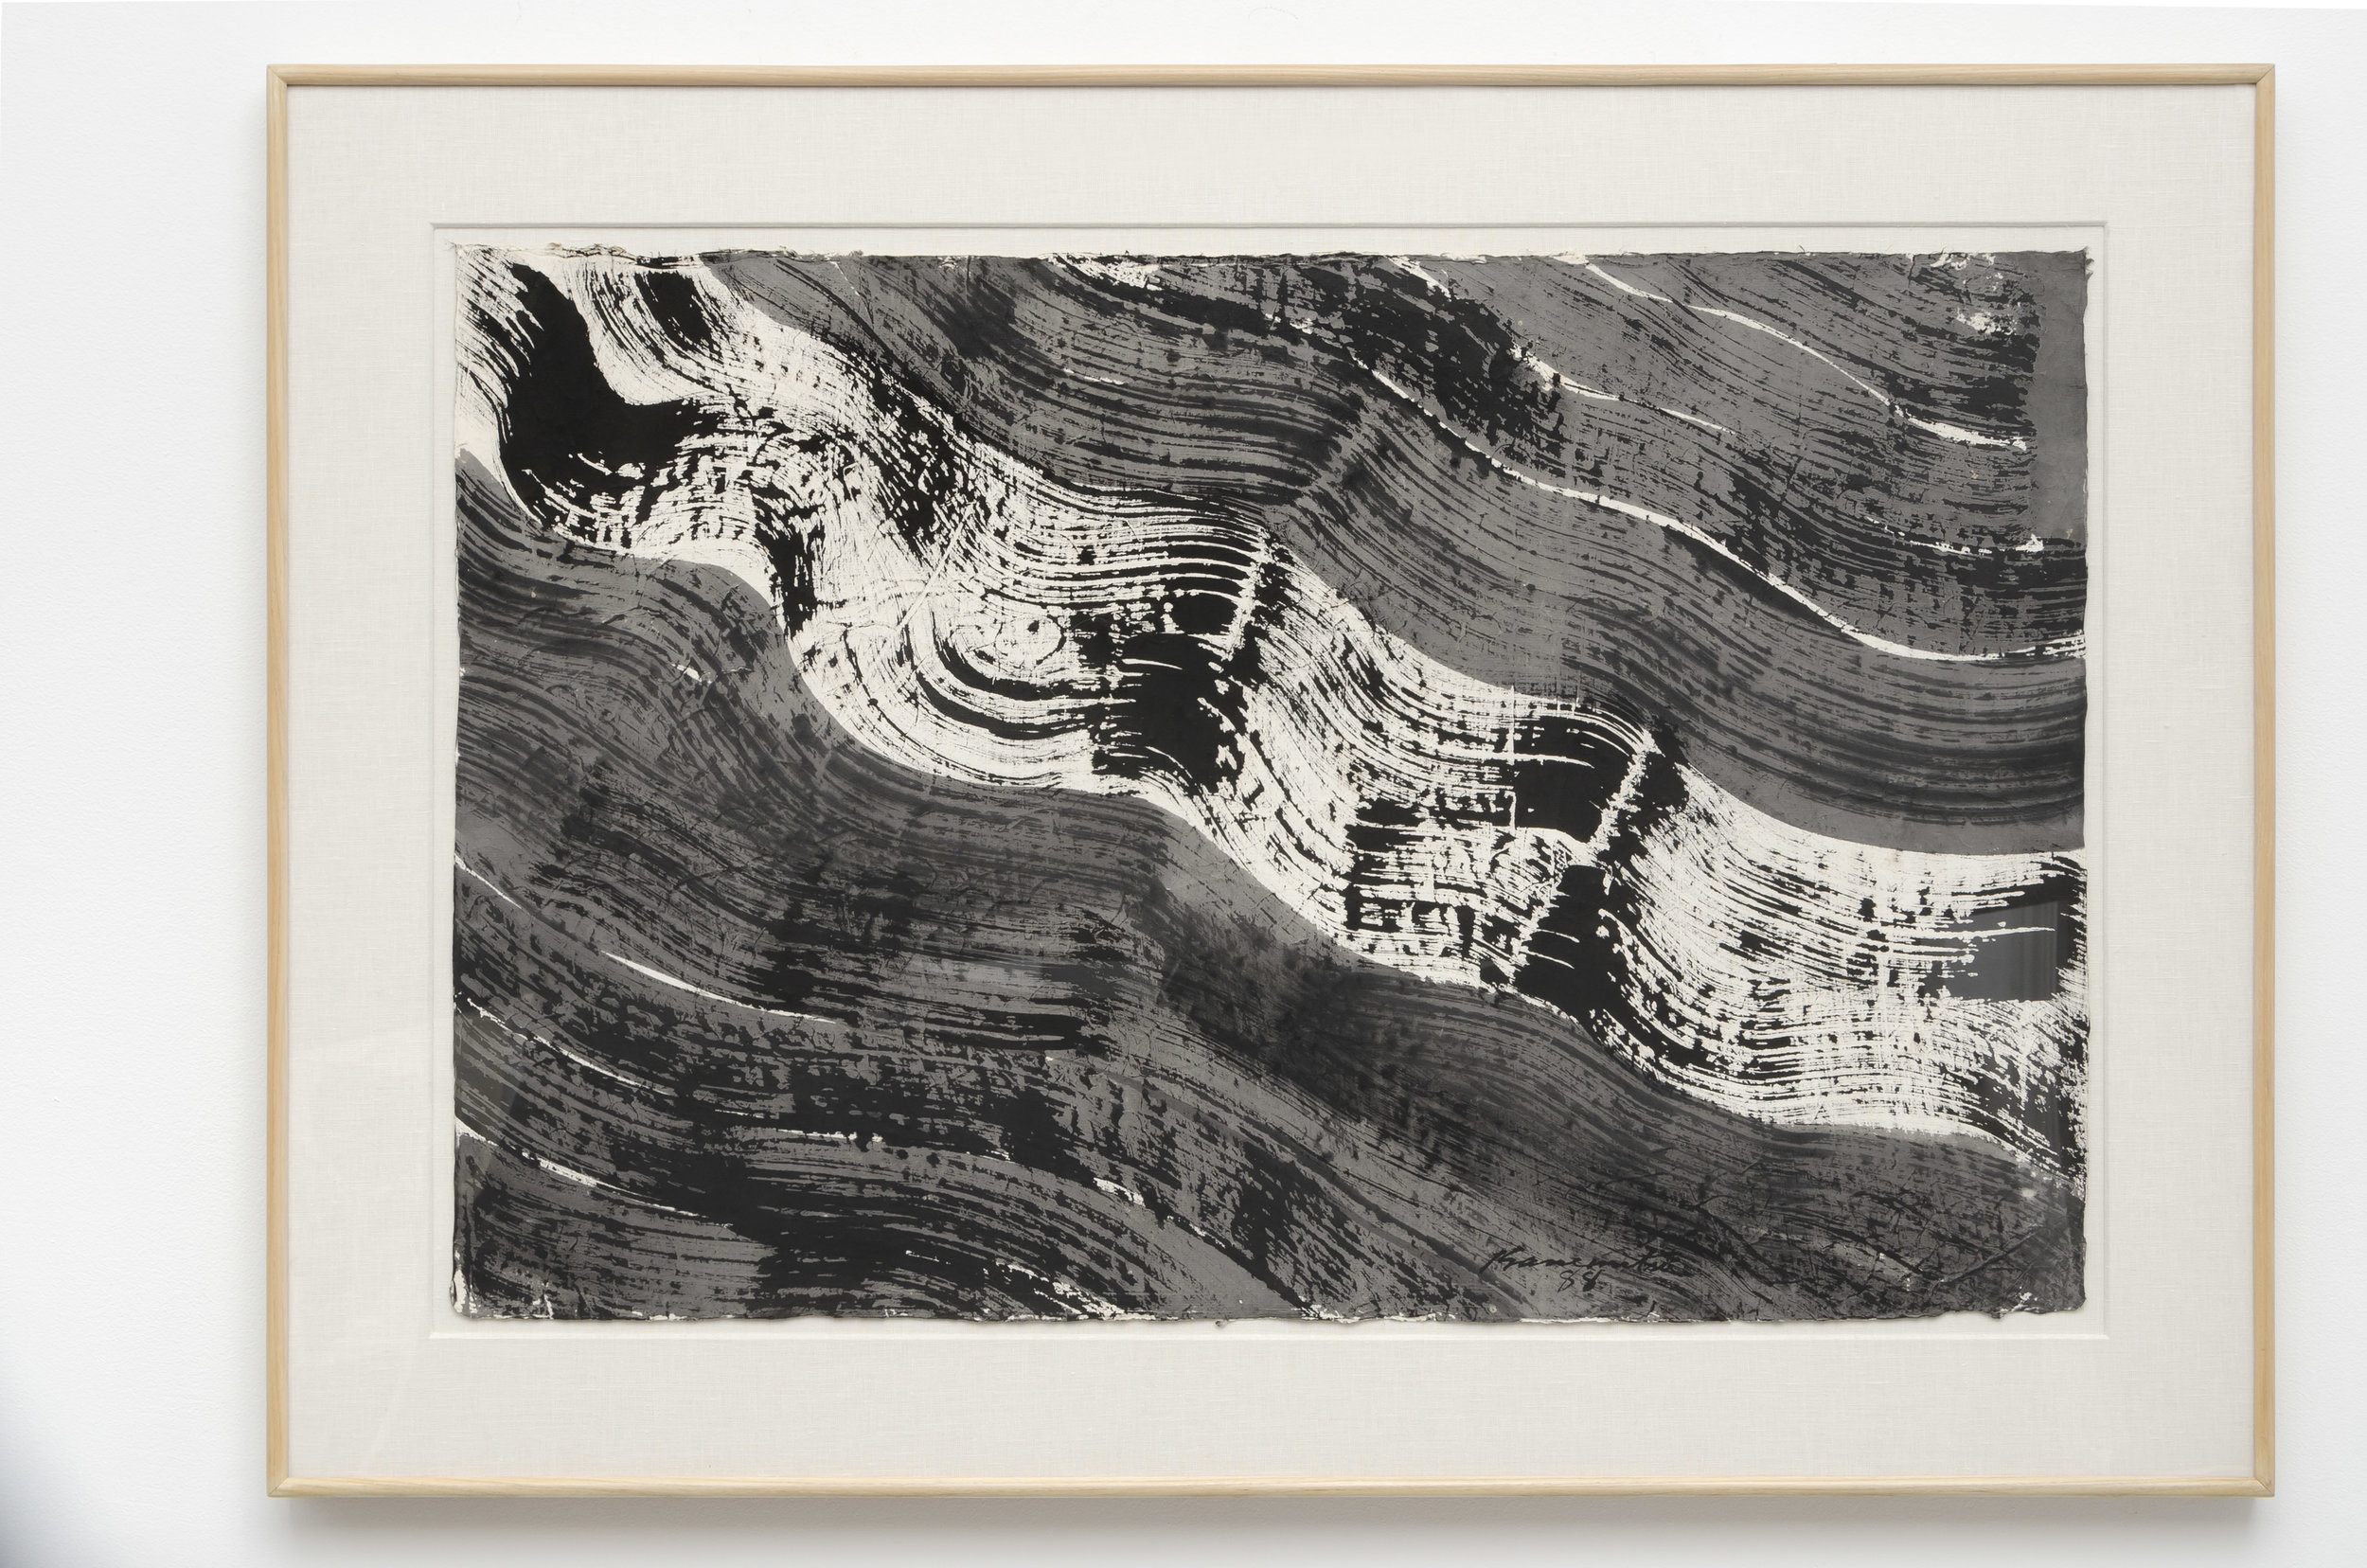 Nagare #5 , 1988 sumi on handmade Japanese paper 33.5 x 46.5 inches; 85.1 x 118.1 centimeters